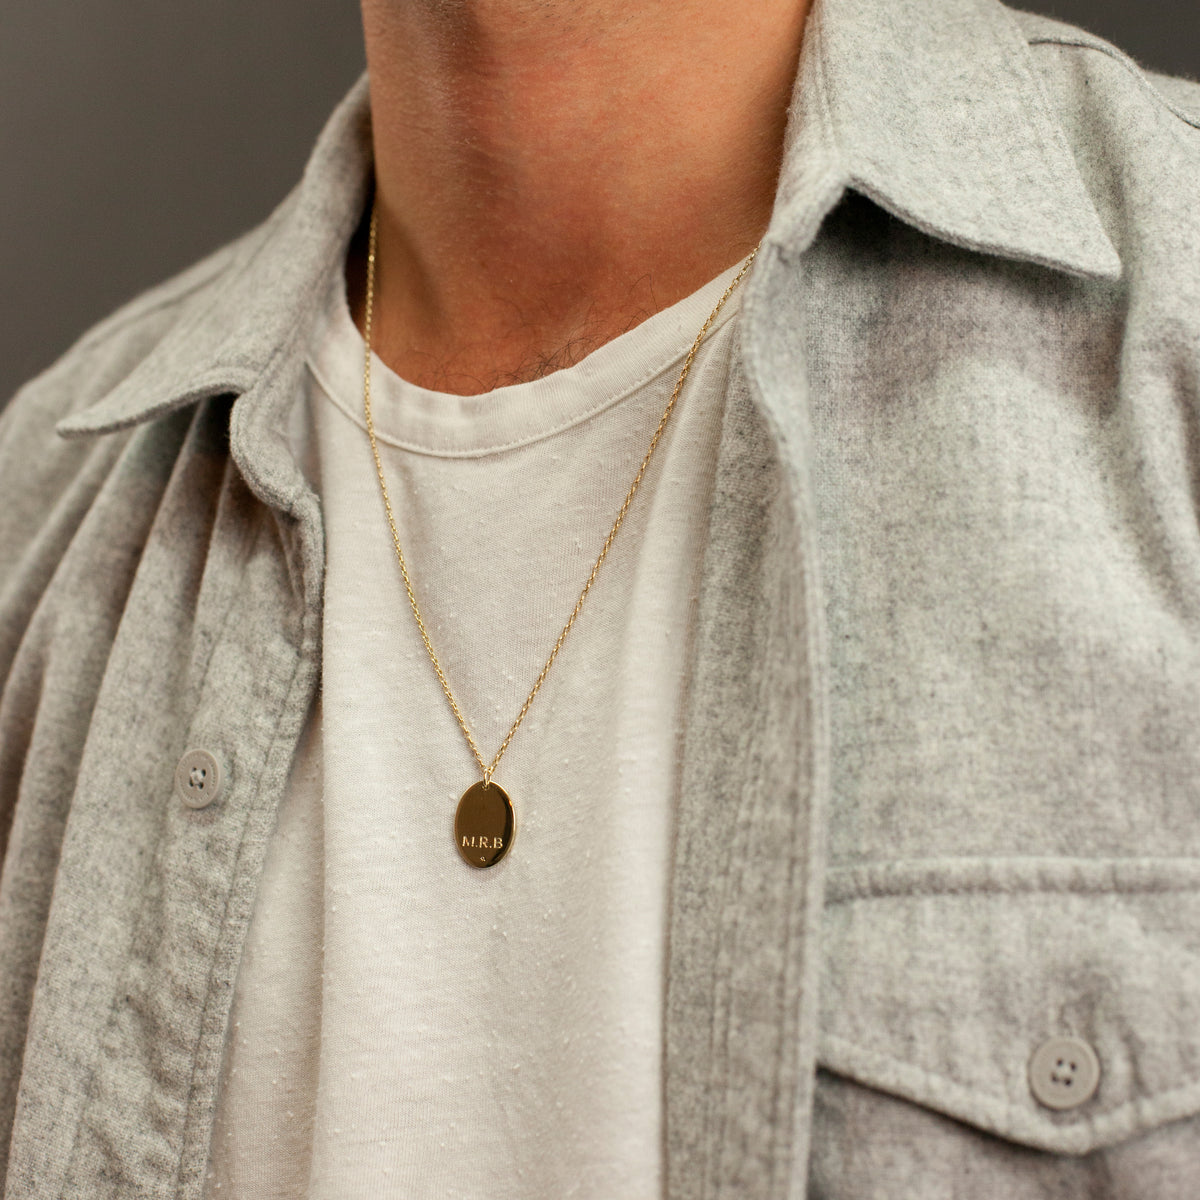 Men's Oval Pendant Necklace. Complimentary Hand Engraving.